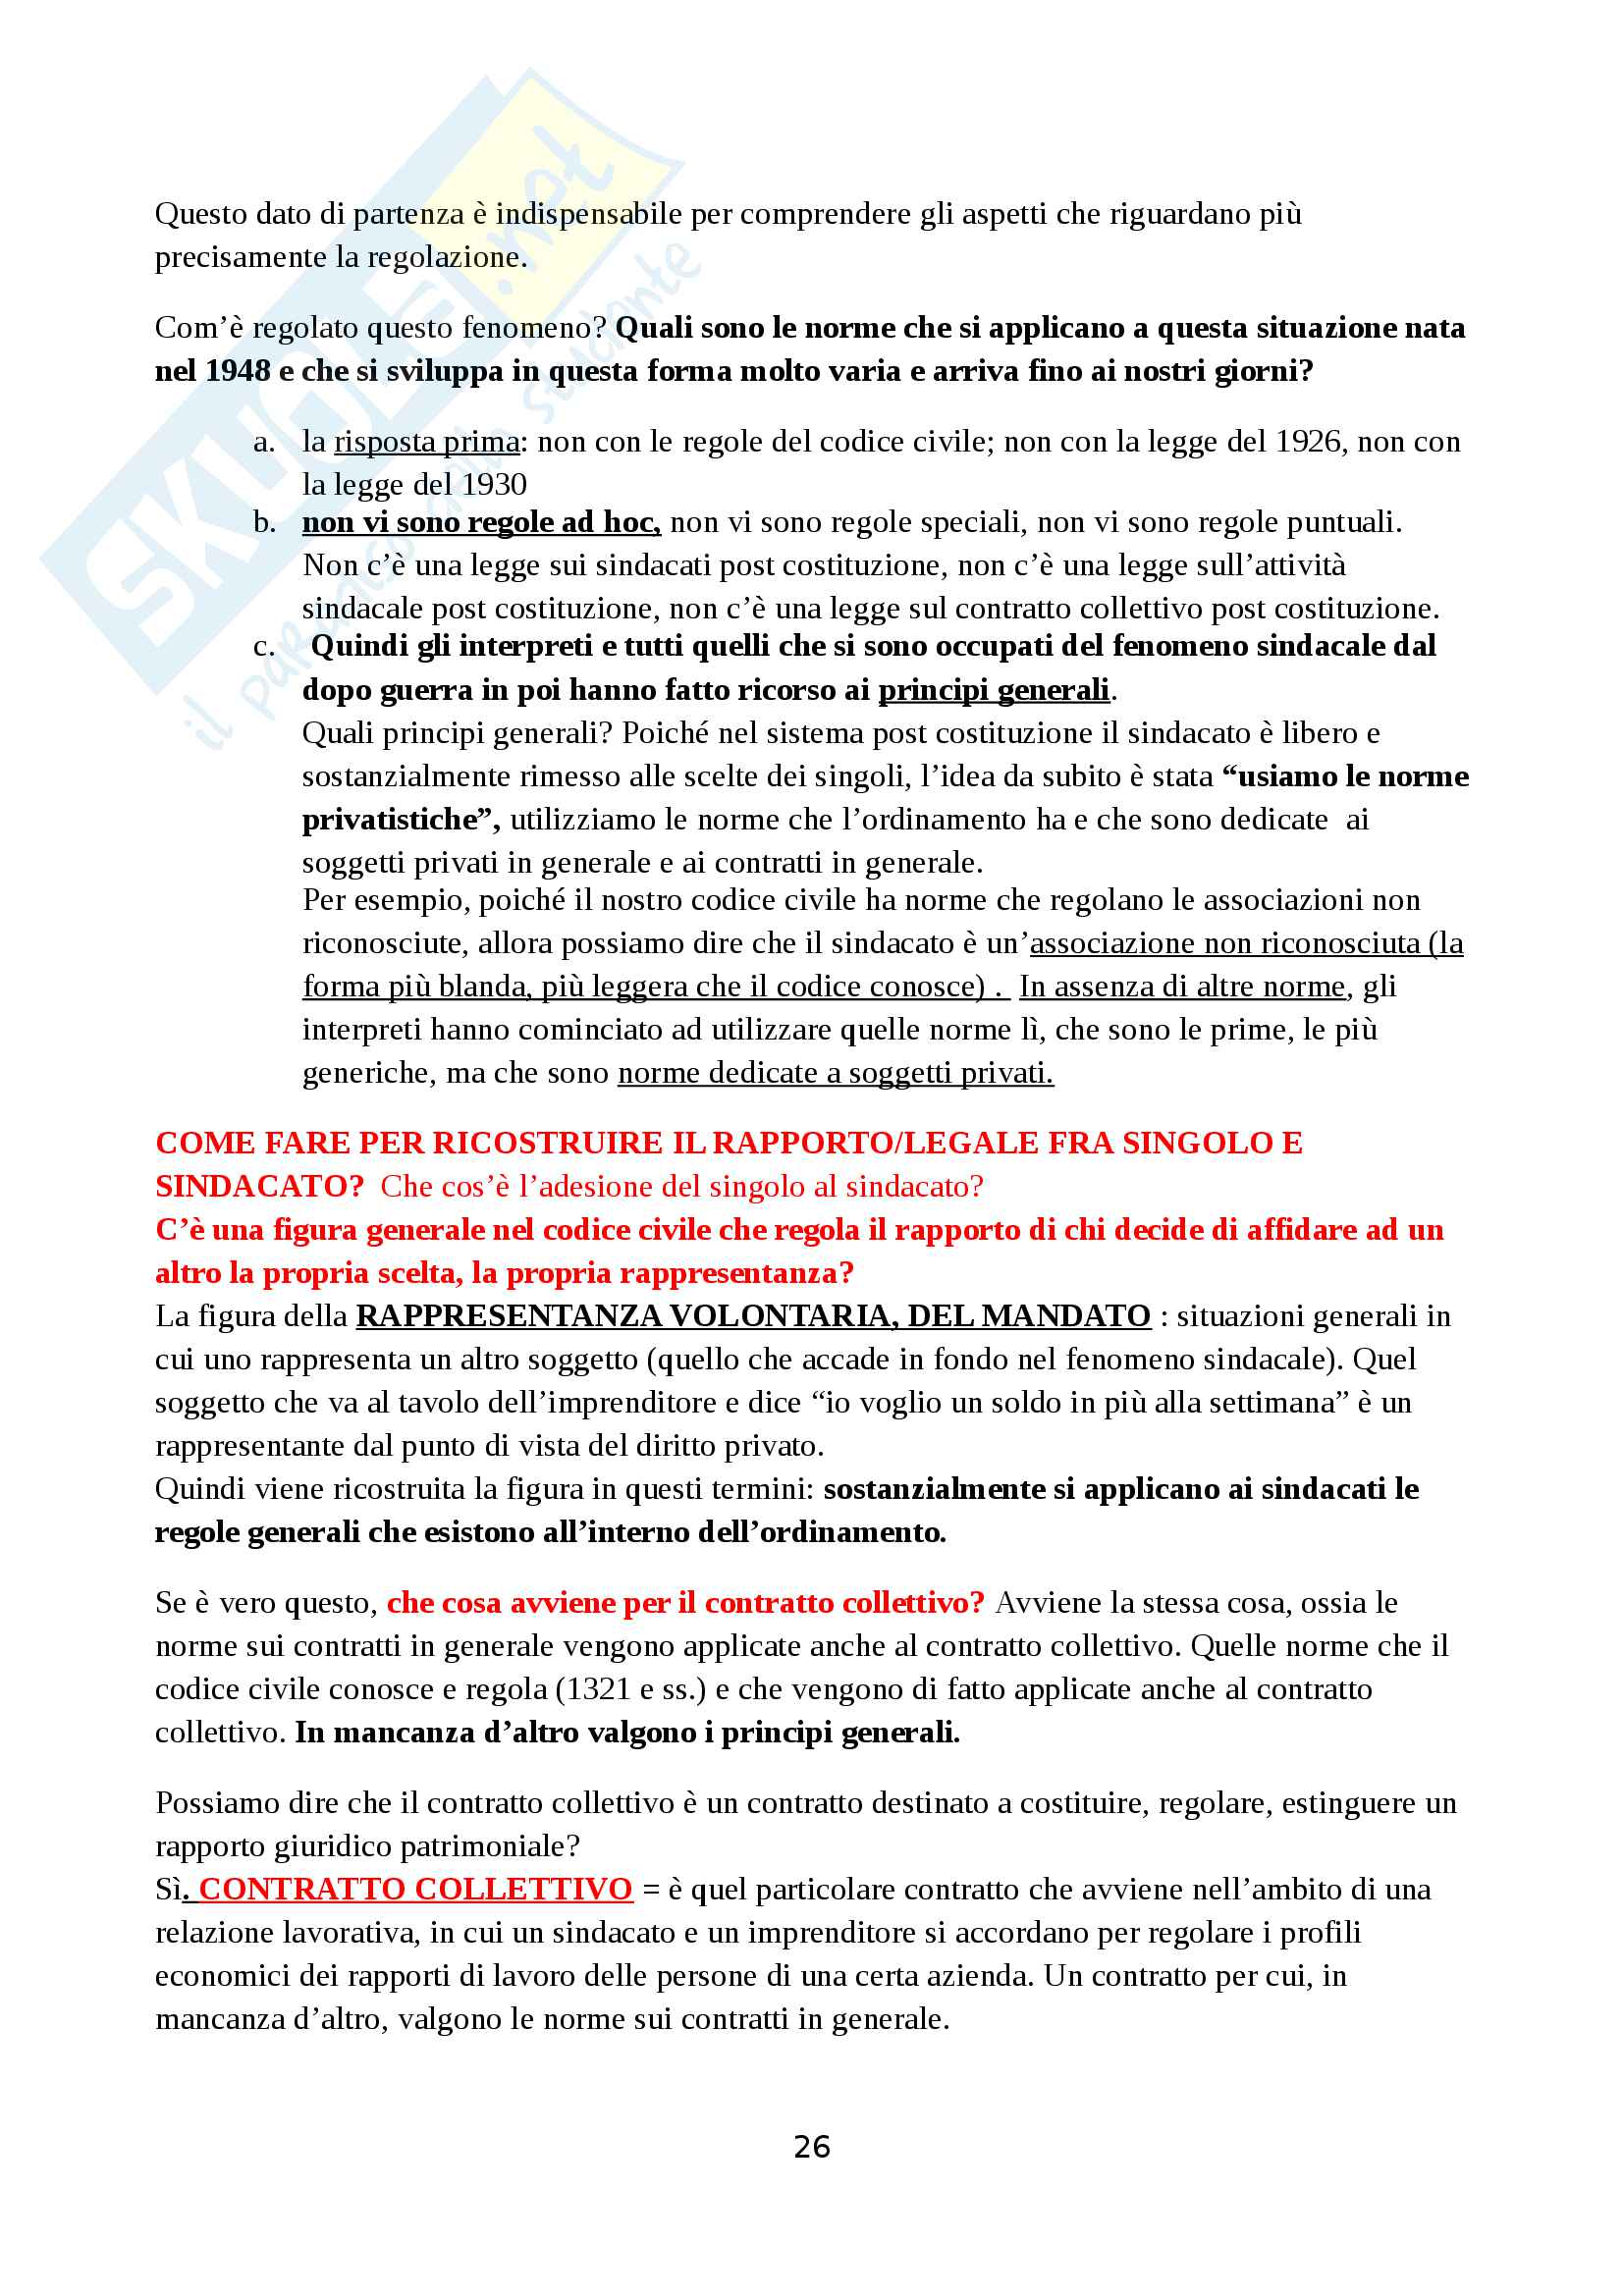 Appunti completi diritto sindacale Pag. 26